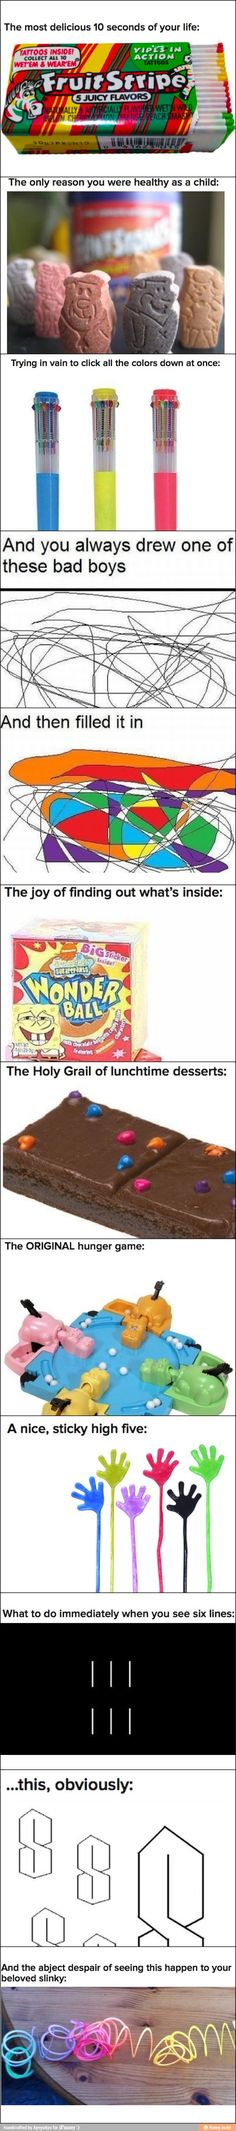 A 90's child every single one of those things is so true!!! Just missing POGS, nano pets and something spice girls lol.